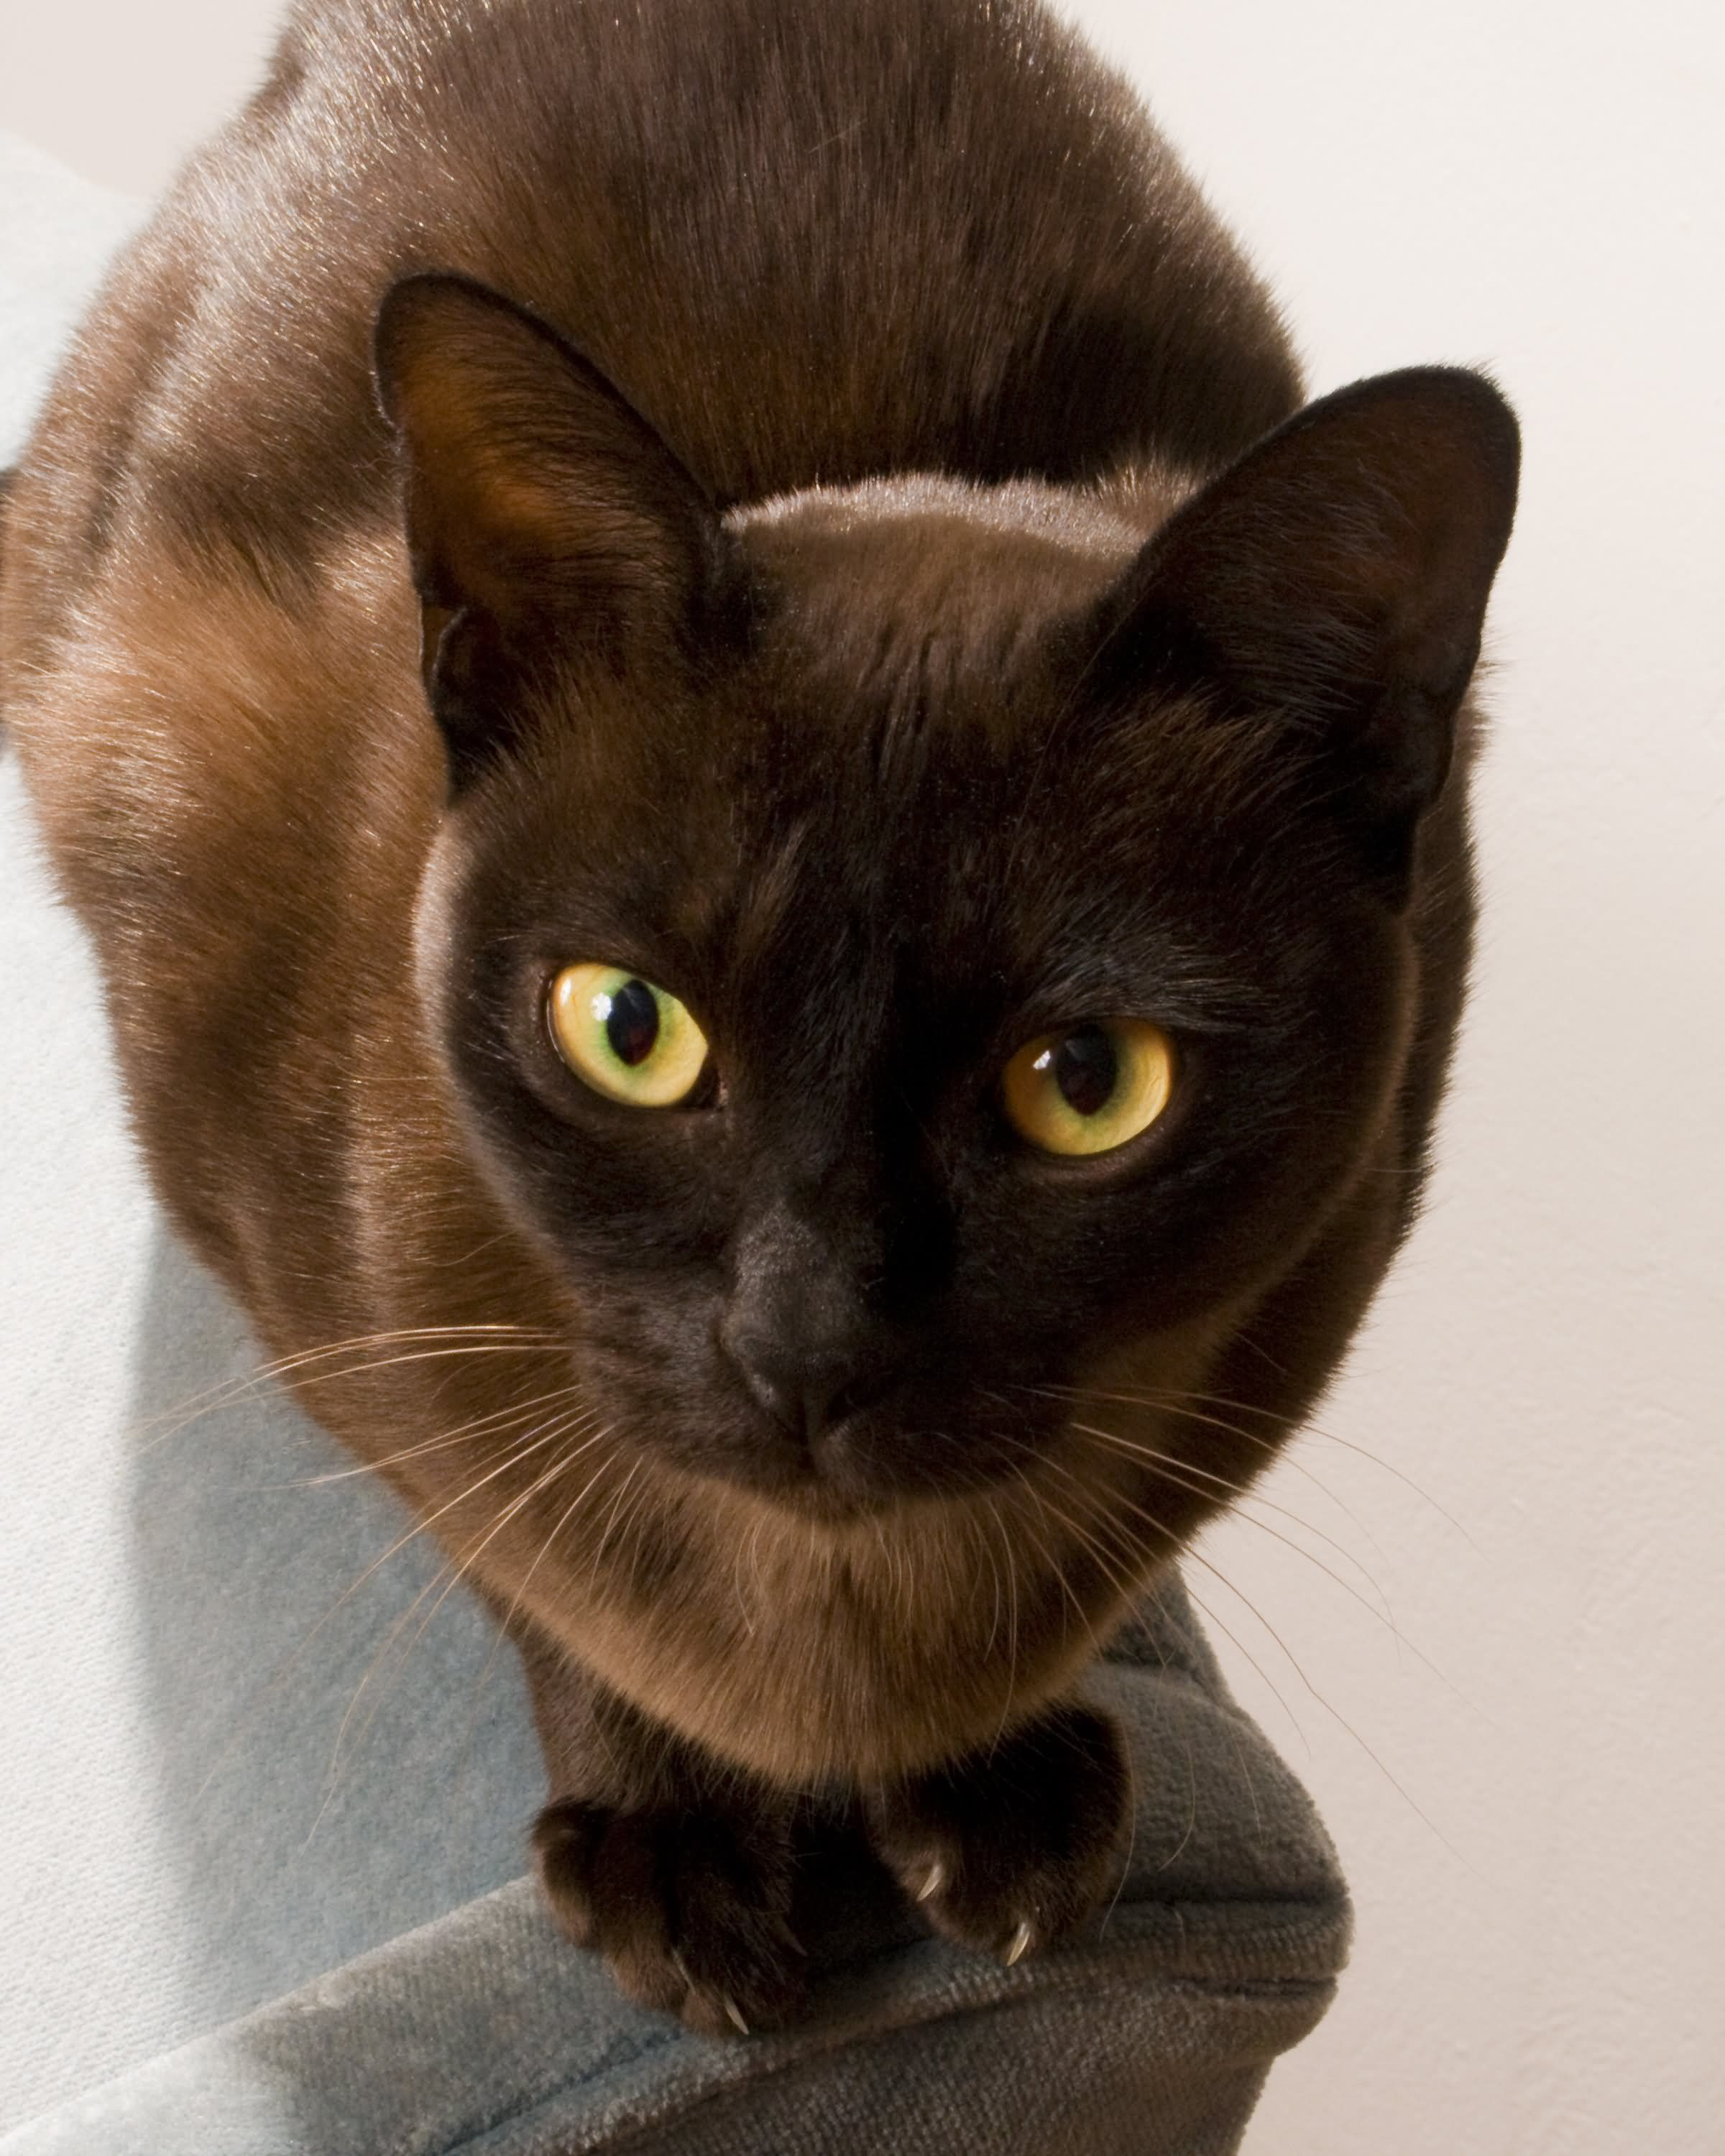 Chocolate Brown Burmese Cat Burmese cat, Cat breeds, Cats